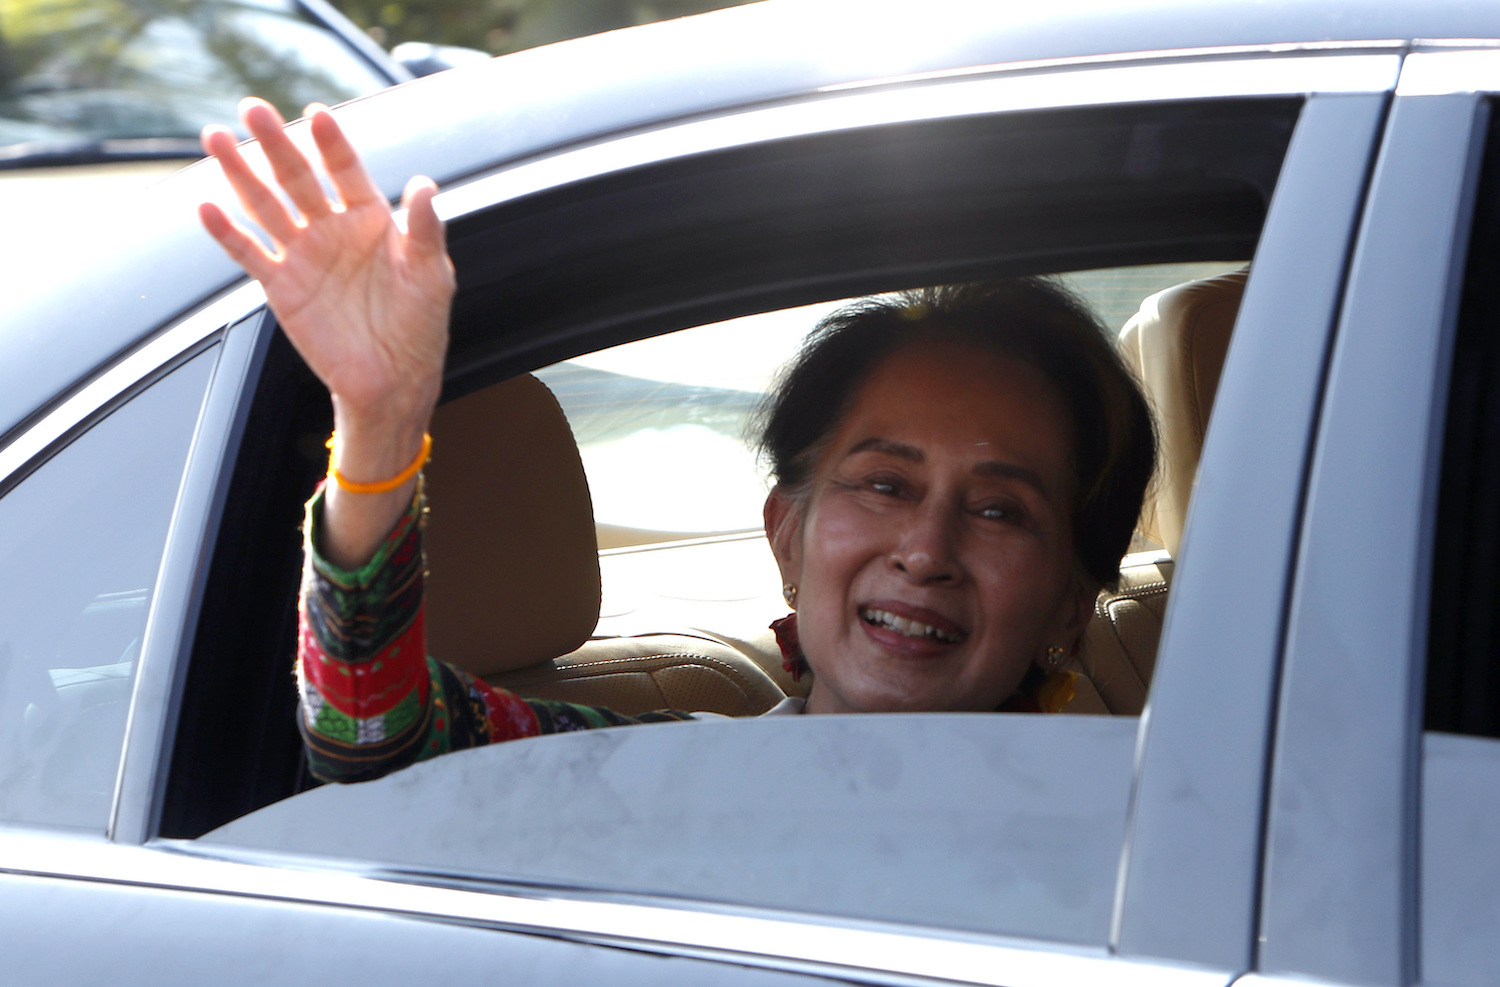 State Counsellor Aung San Suu Kyi waves to supporters from her car outside the airport after arriving in Nay Pyi Taw on Saturday. (AP Photo)